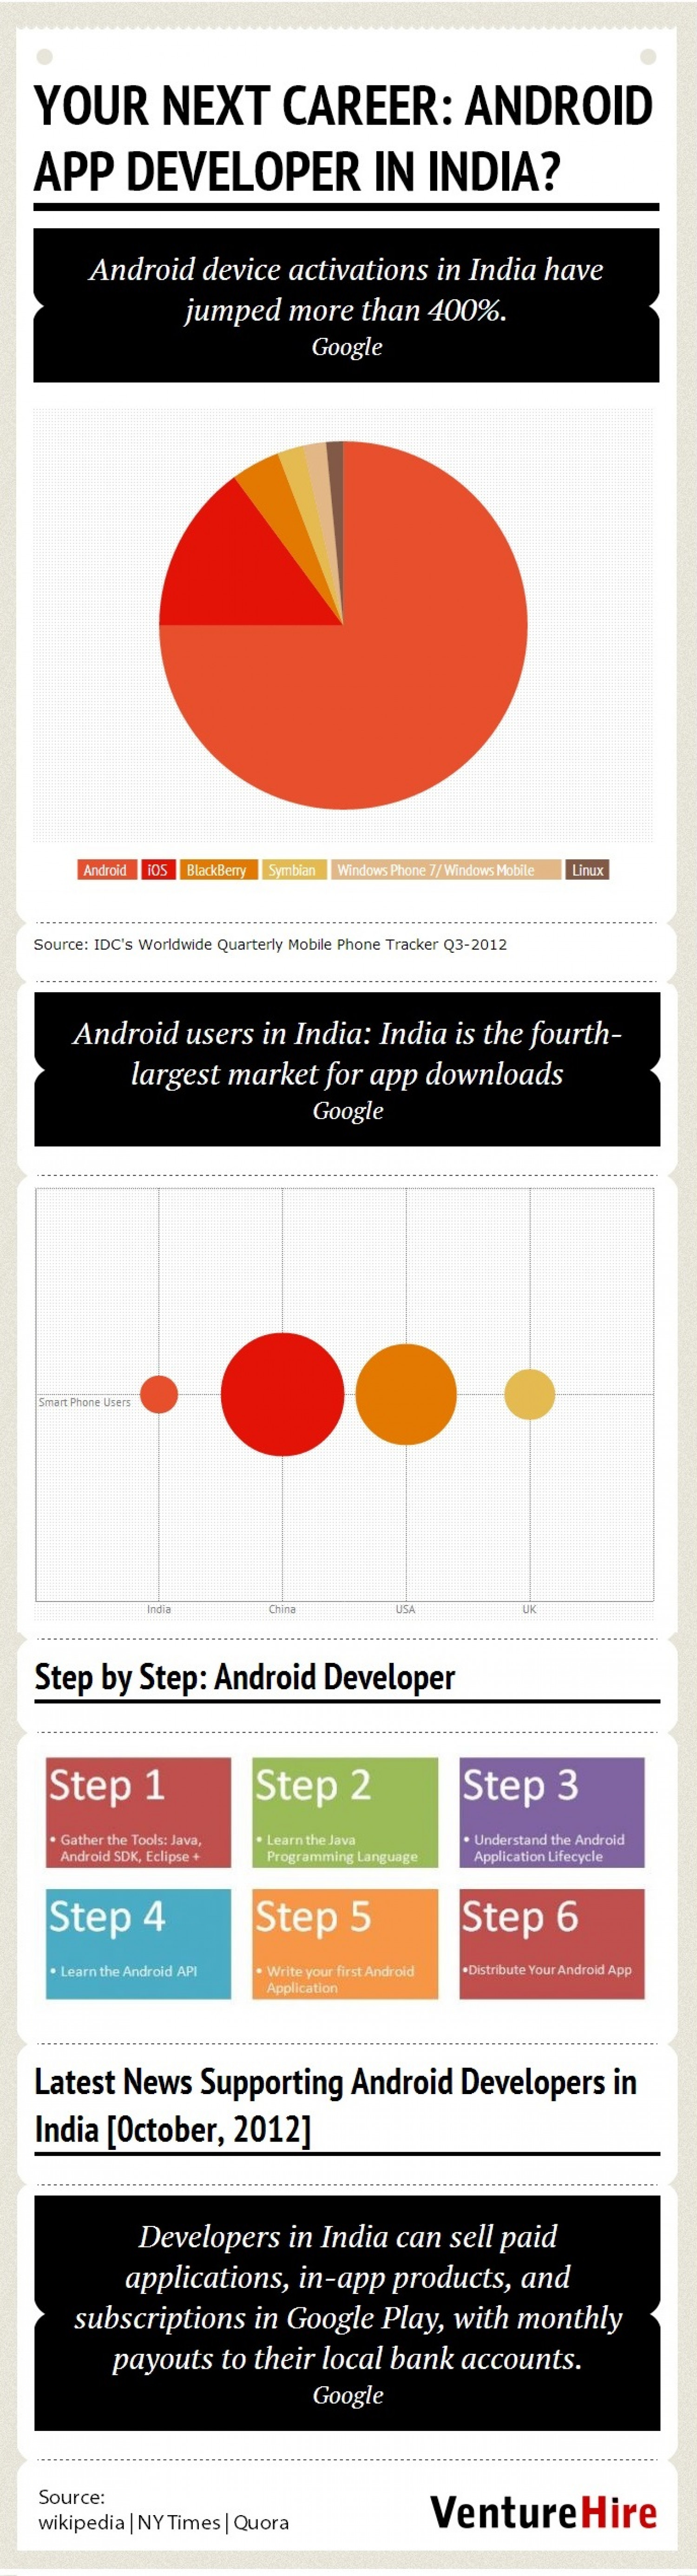 Why should you consider a Career in Android in India? Infographic